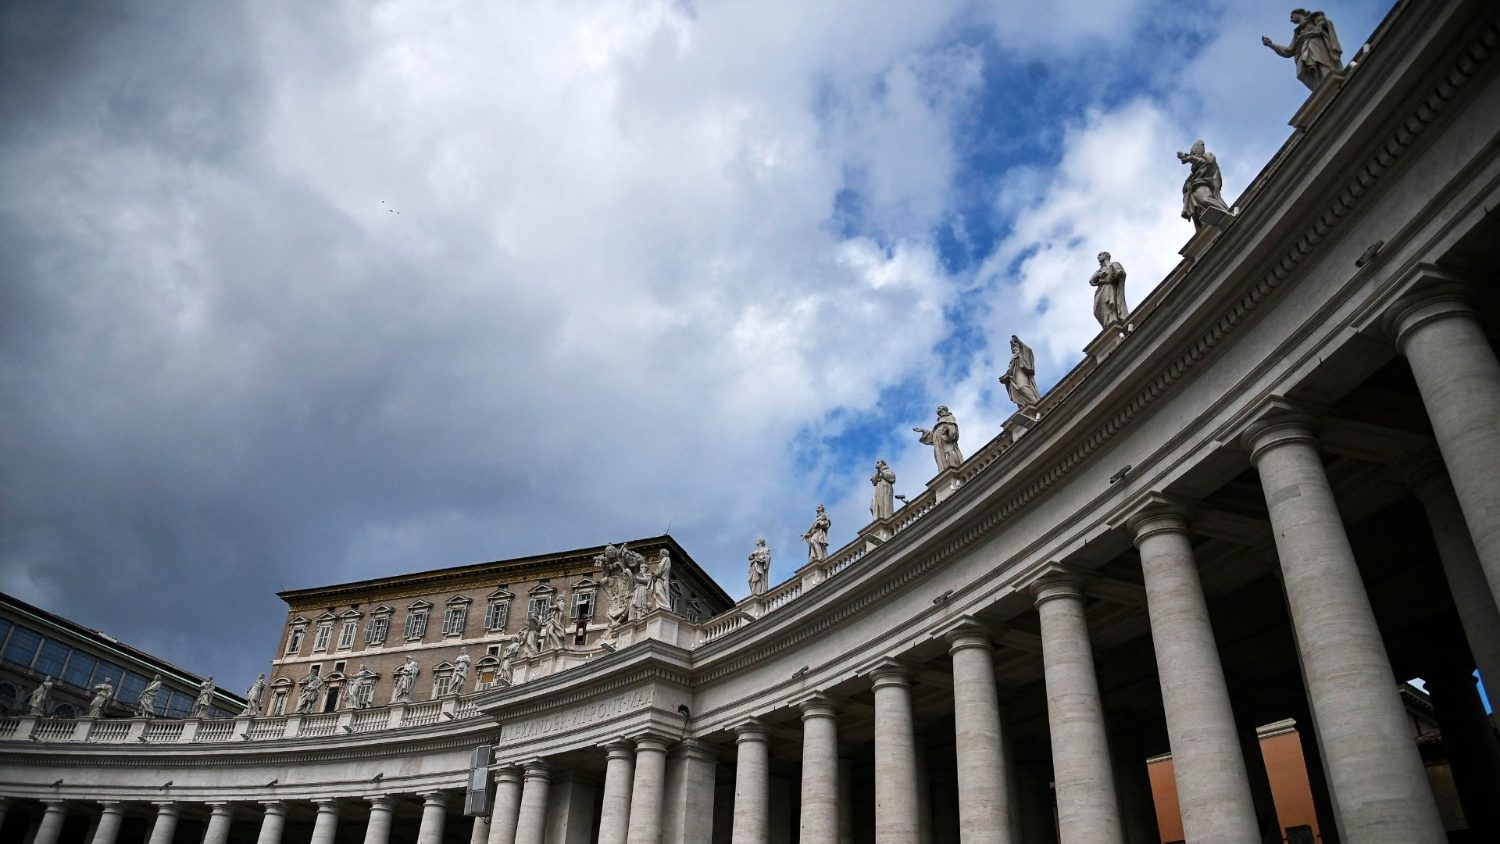 Vatican: Supervision of financial movements strengthened - Vatican News